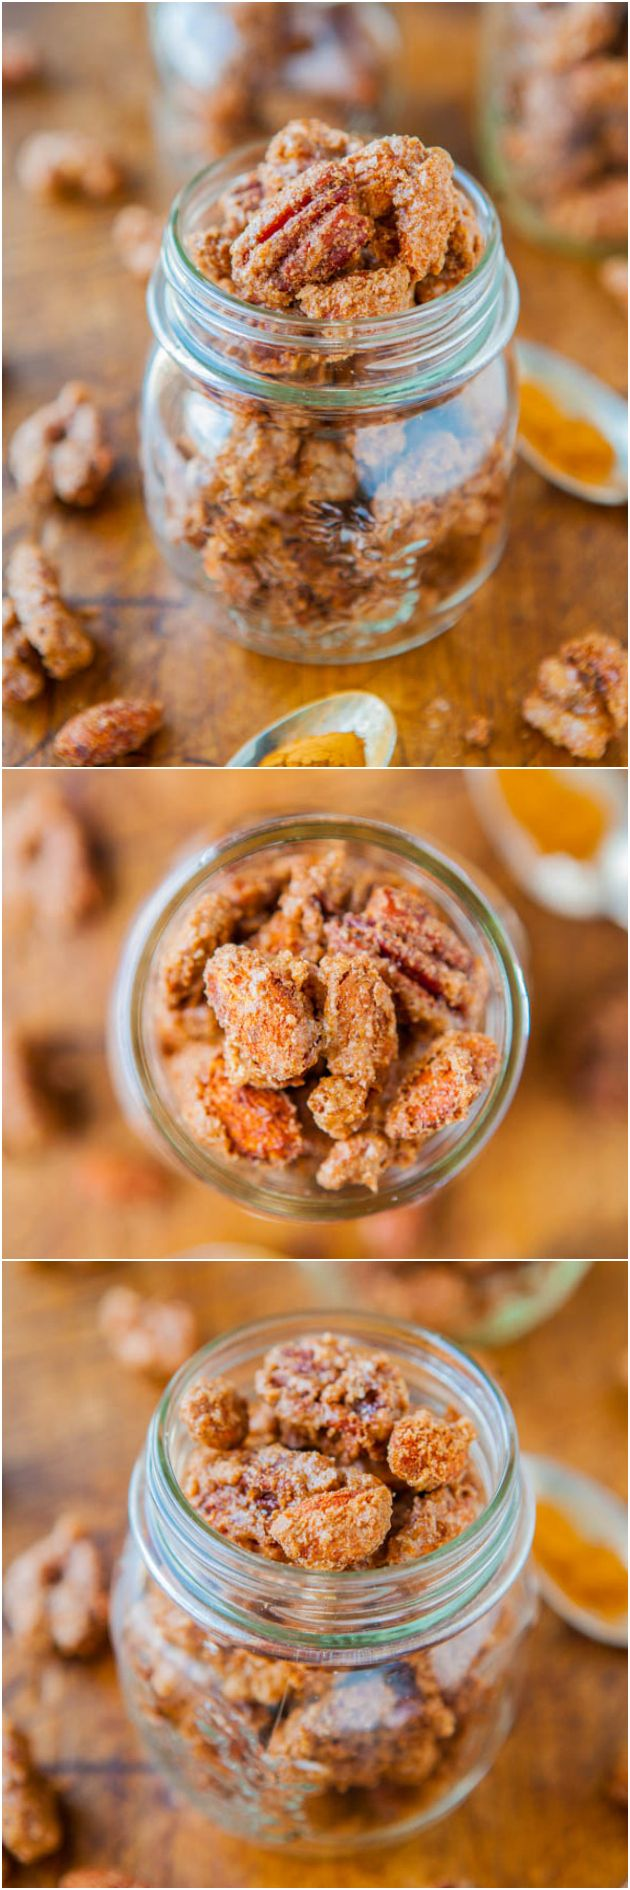 Sweet with Heat Cinnamon Sugar Candied Nuts - Make shopping mall-style candied nuts any time you want! Just 30 minutes and they're ready! So easy! Great gift idea!